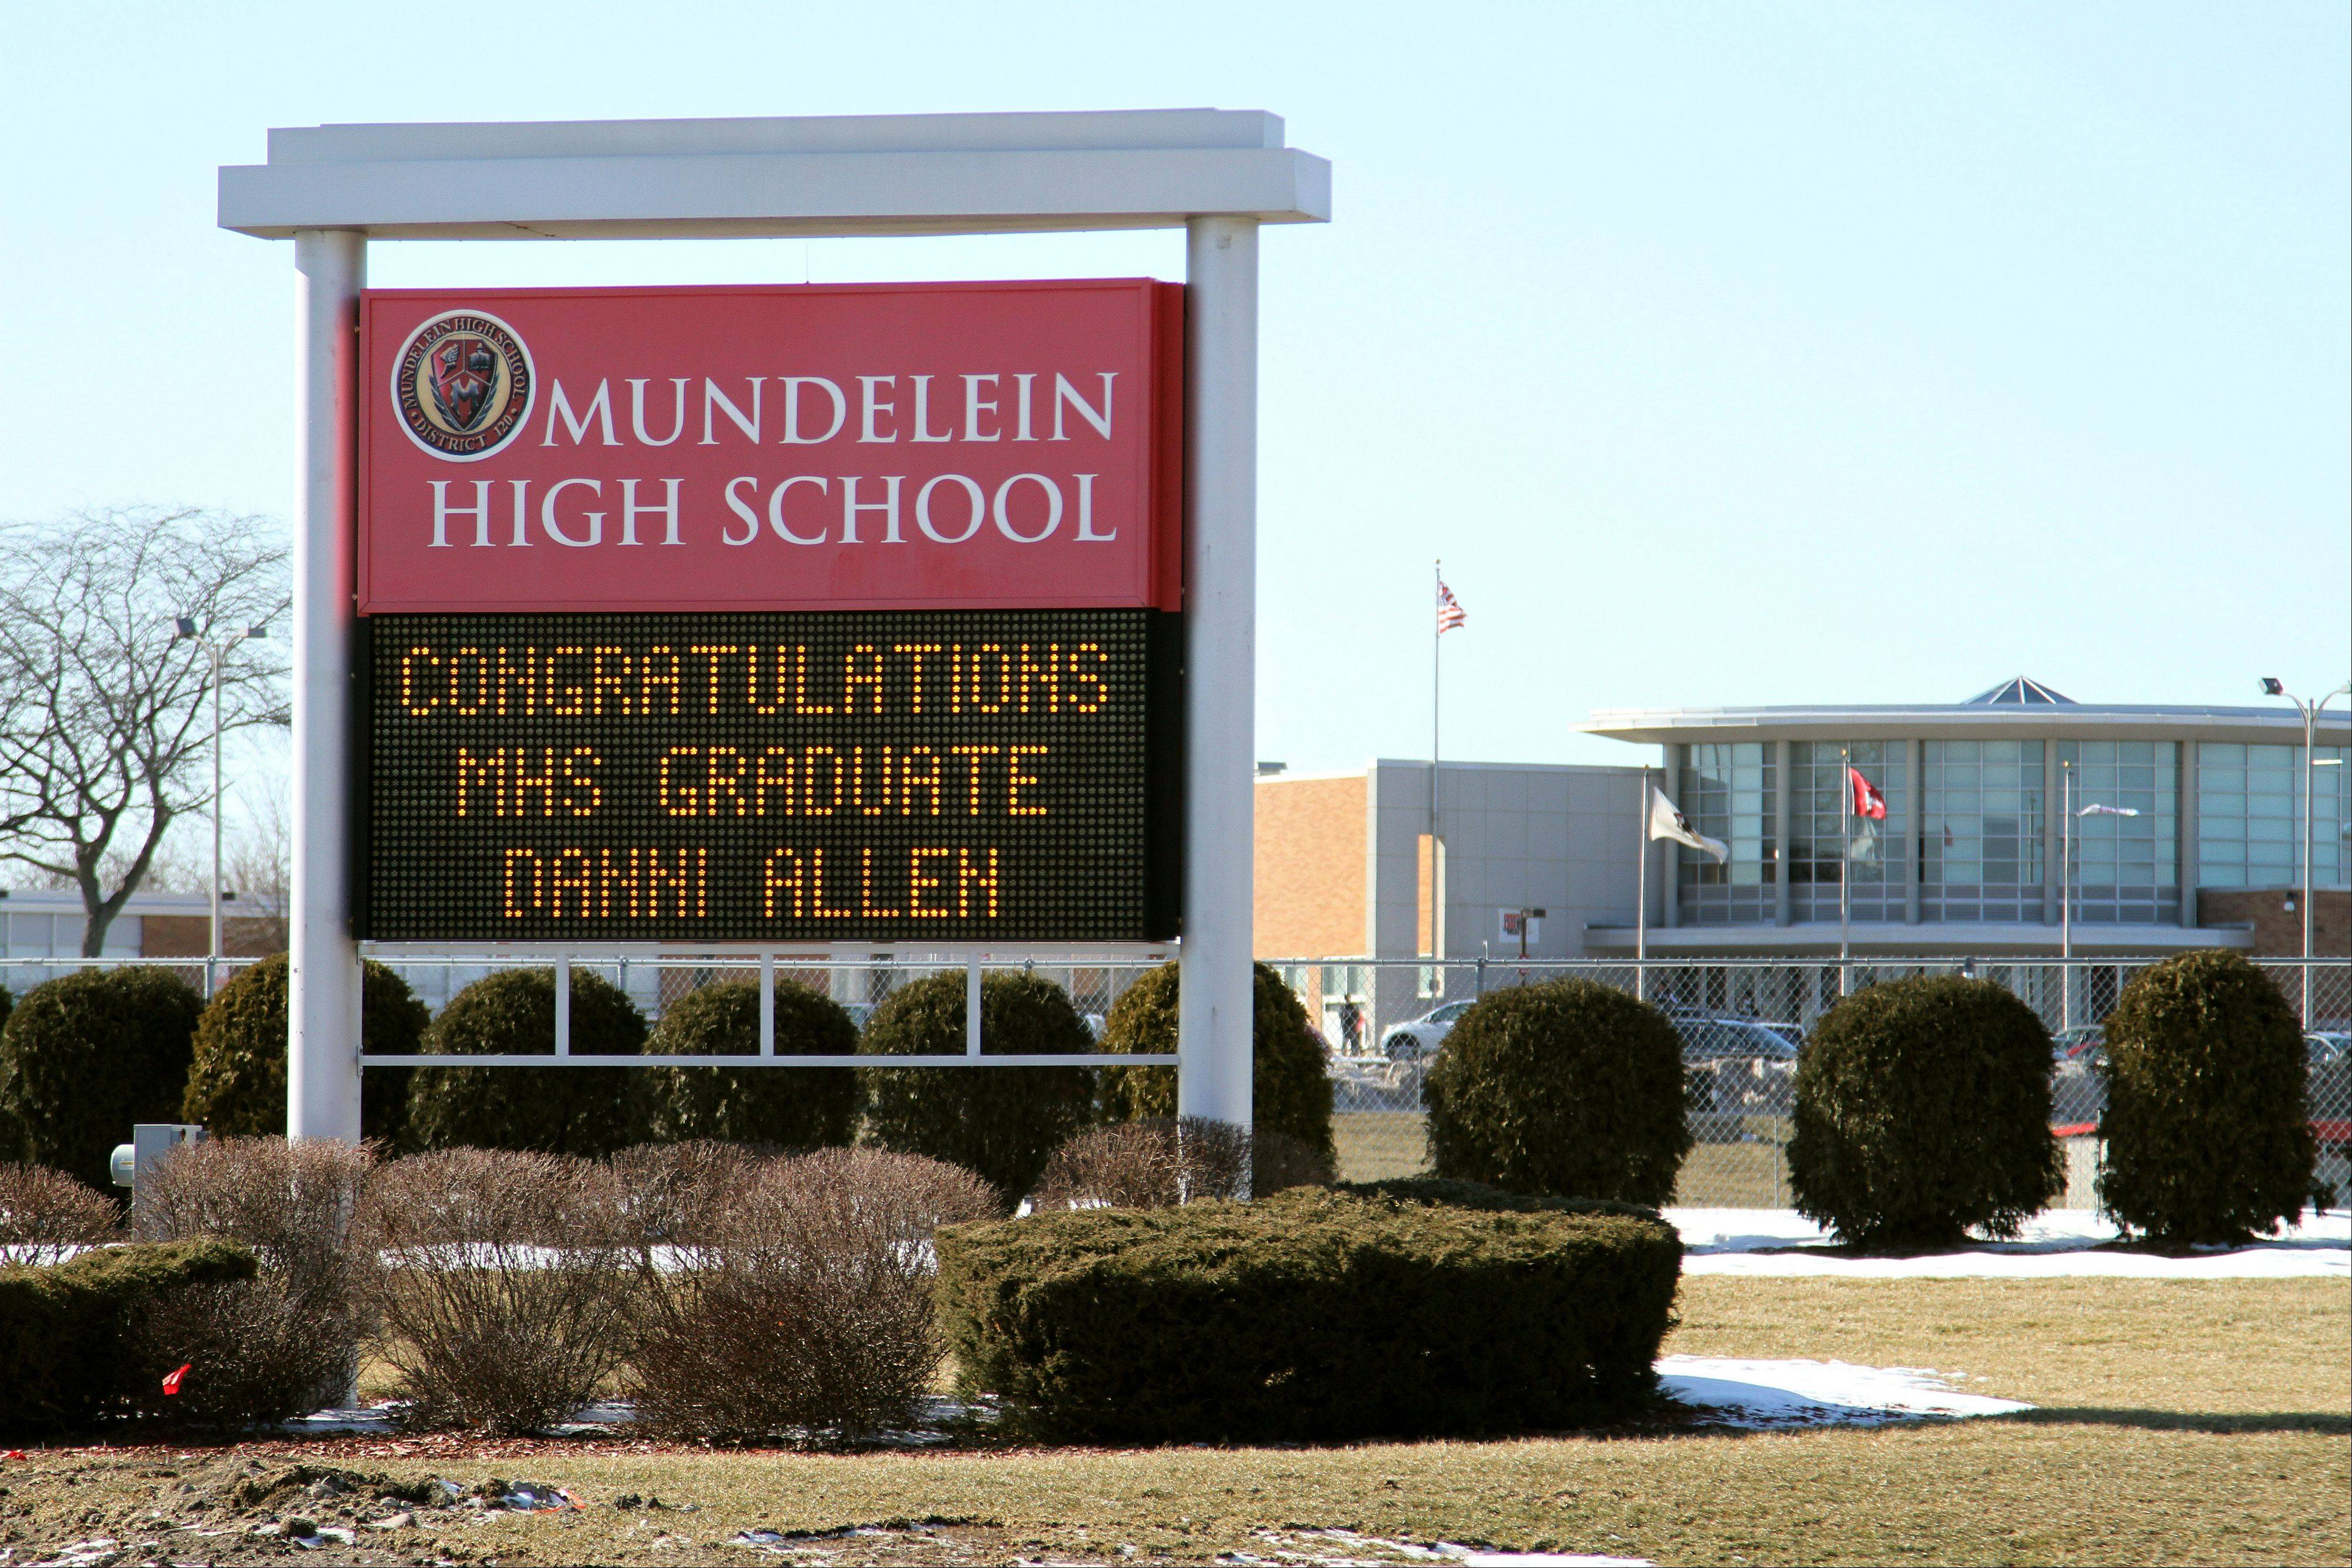 Mundelein High School will continue to sell Coca-Cola products in vending machines.